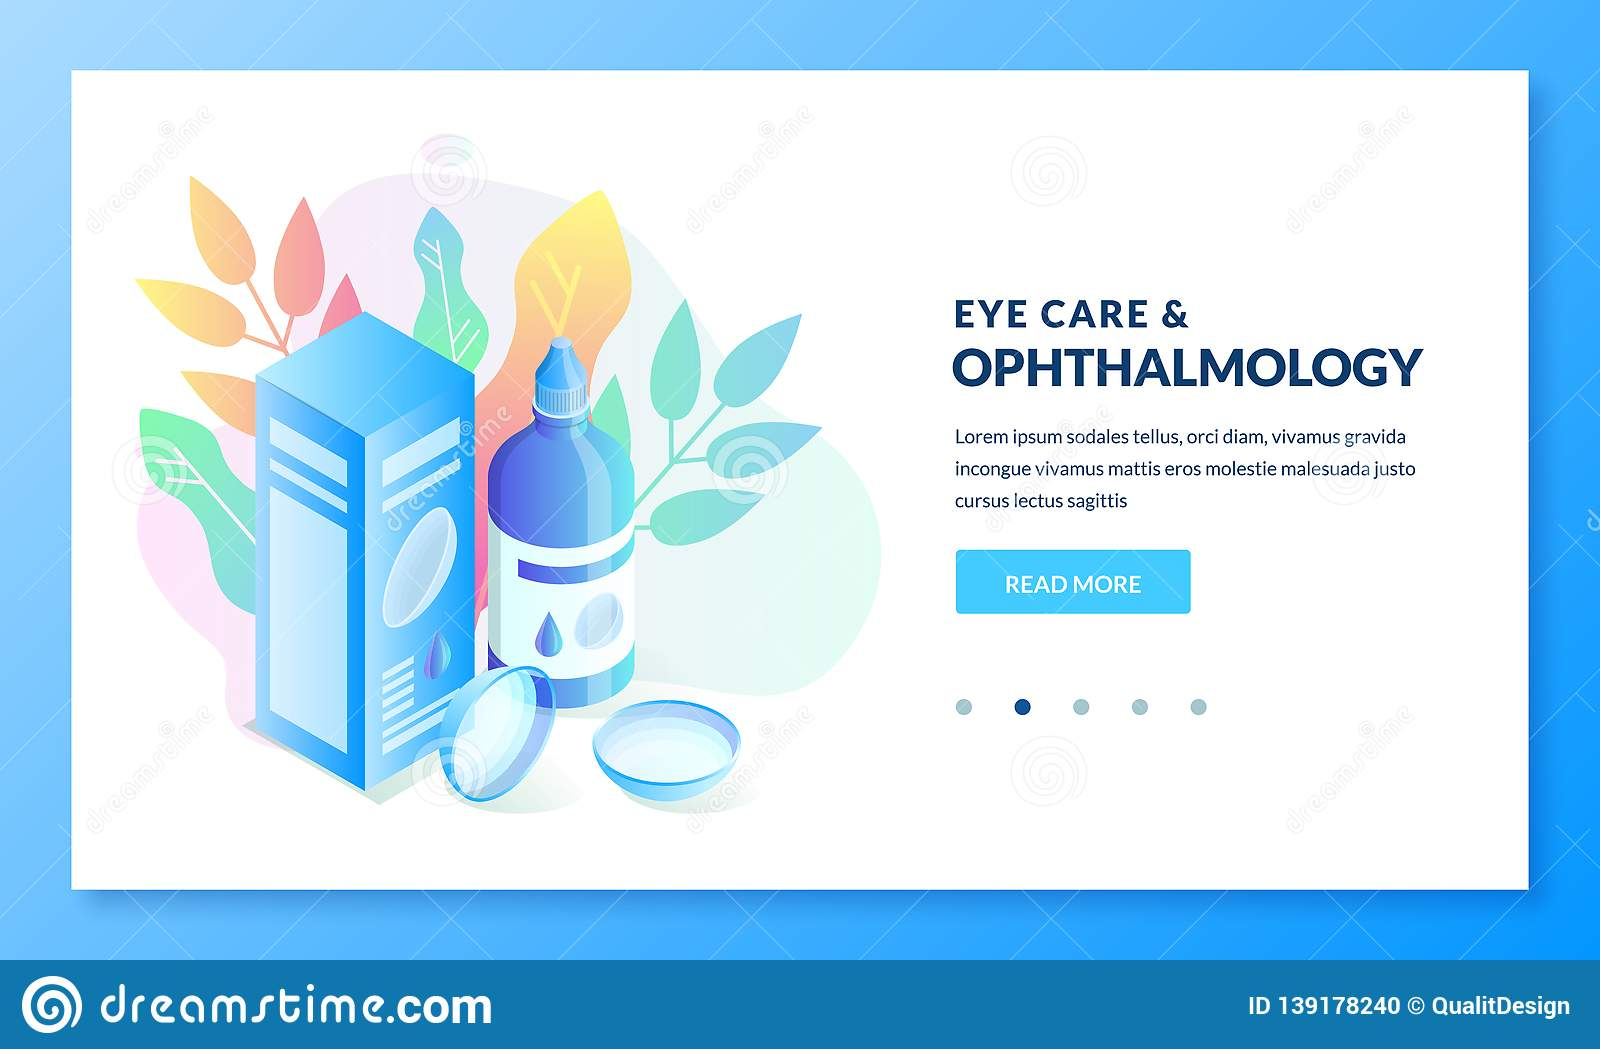 Ophthalmology and eye care, isometric gradient illustration. Landing page or banner design template